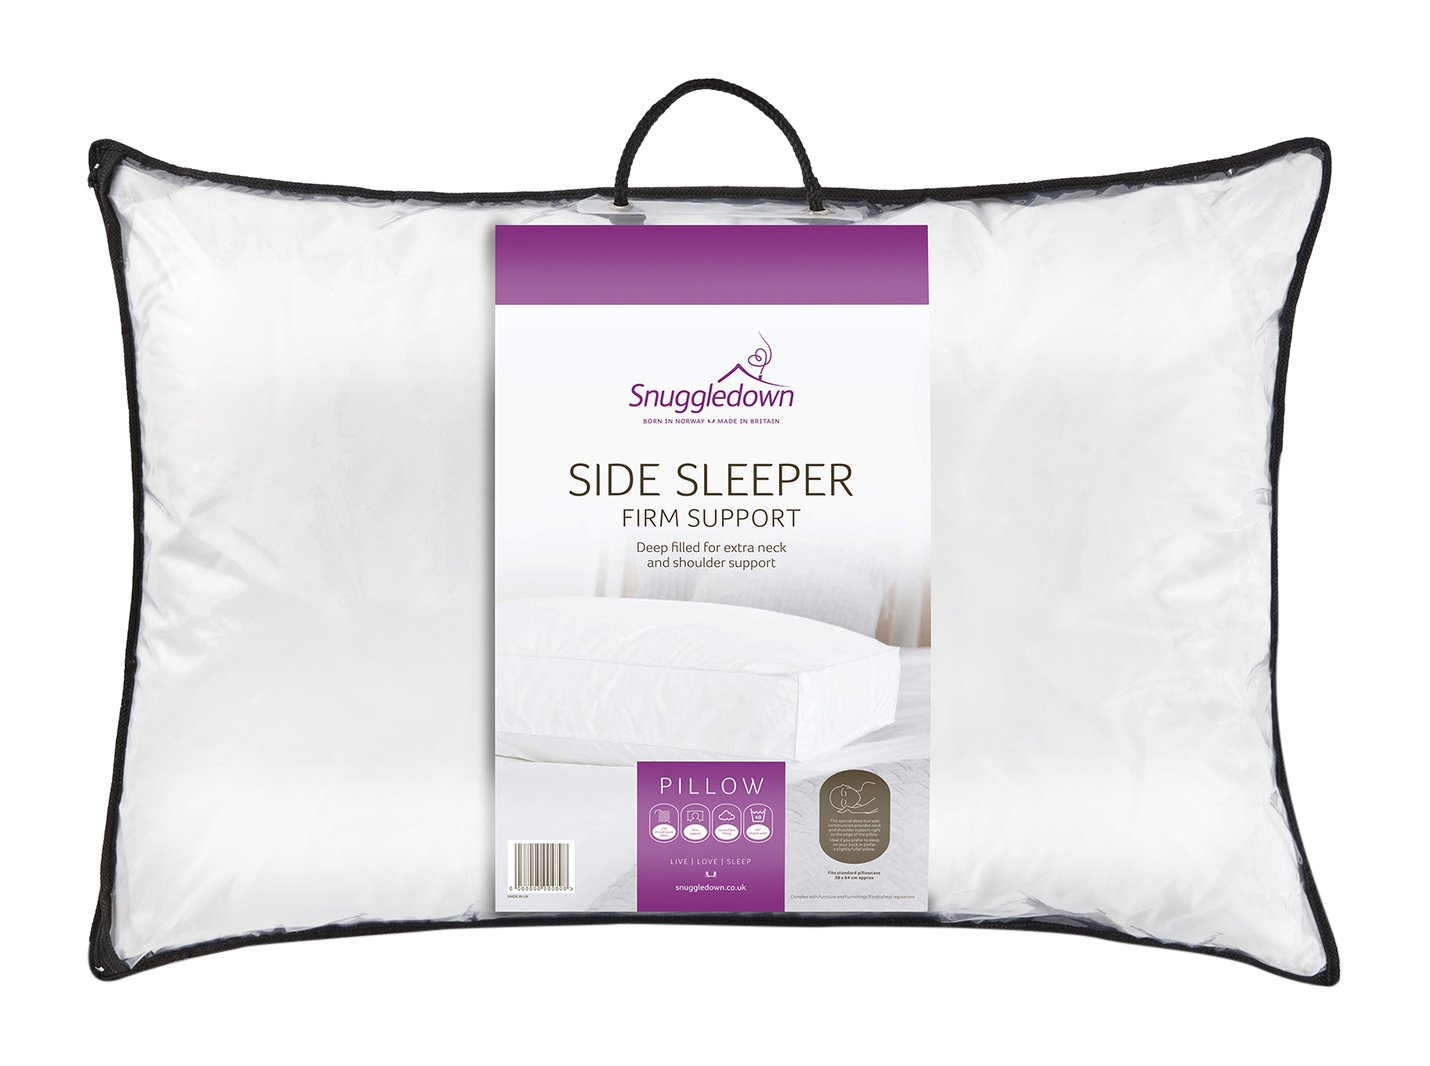 with home kitchen support sleepers cover bed amazon bamboo pillow contoured wedge com sleeper side dp avana for